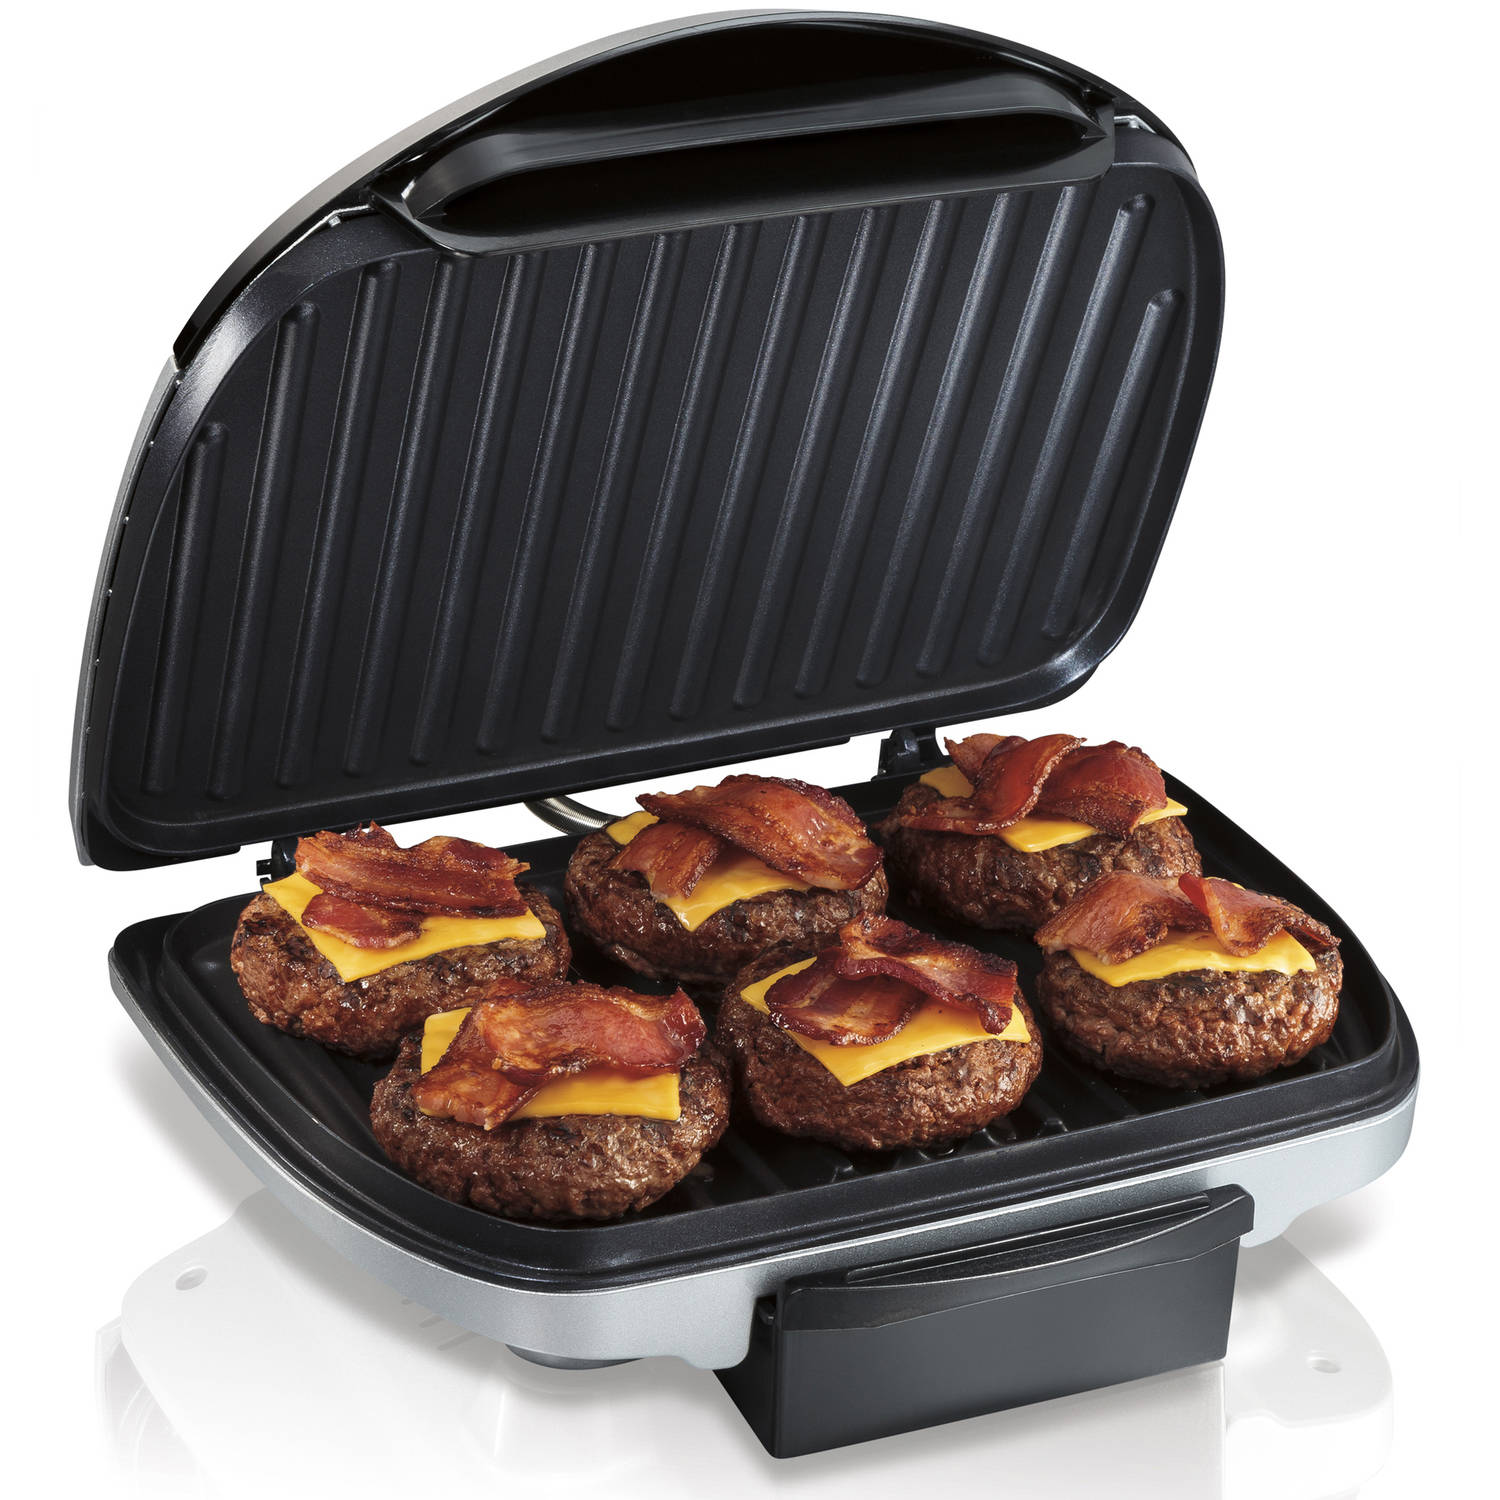 Hamilton Beach Nonstick Indoor Grill | Model# 25371